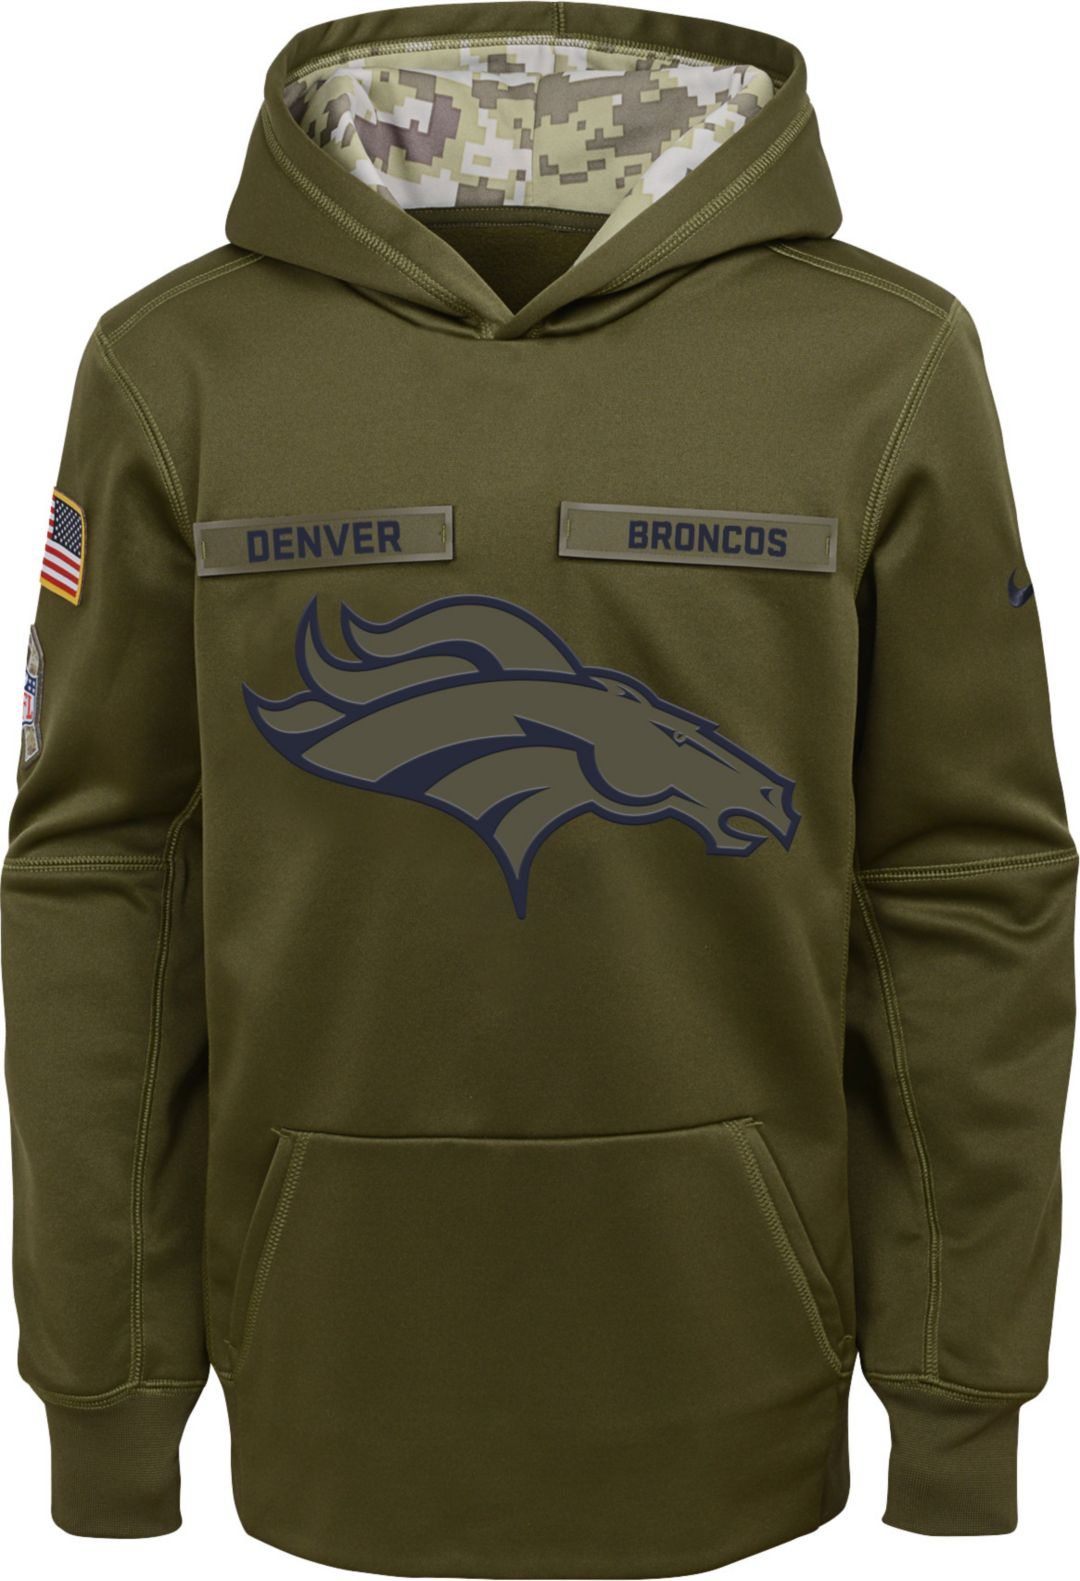 8aa4f3bd9 Nike Youth Salute to Service Denver Broncos Therma-FIT Olive ...